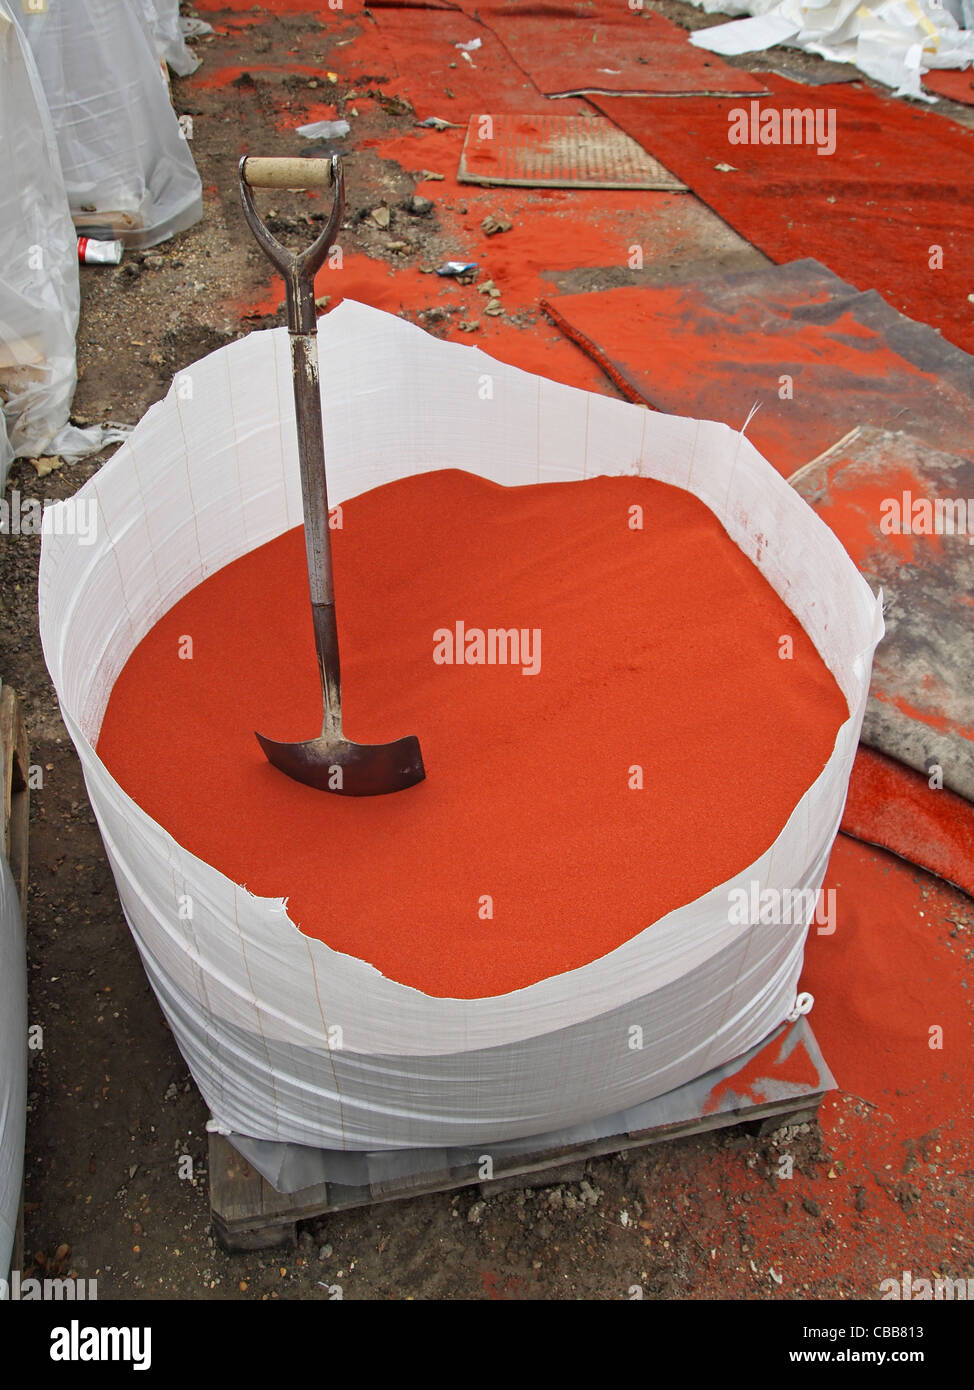 Construction of synthetic clay tennis courts -  a bag of the clay top layer - Stock Image